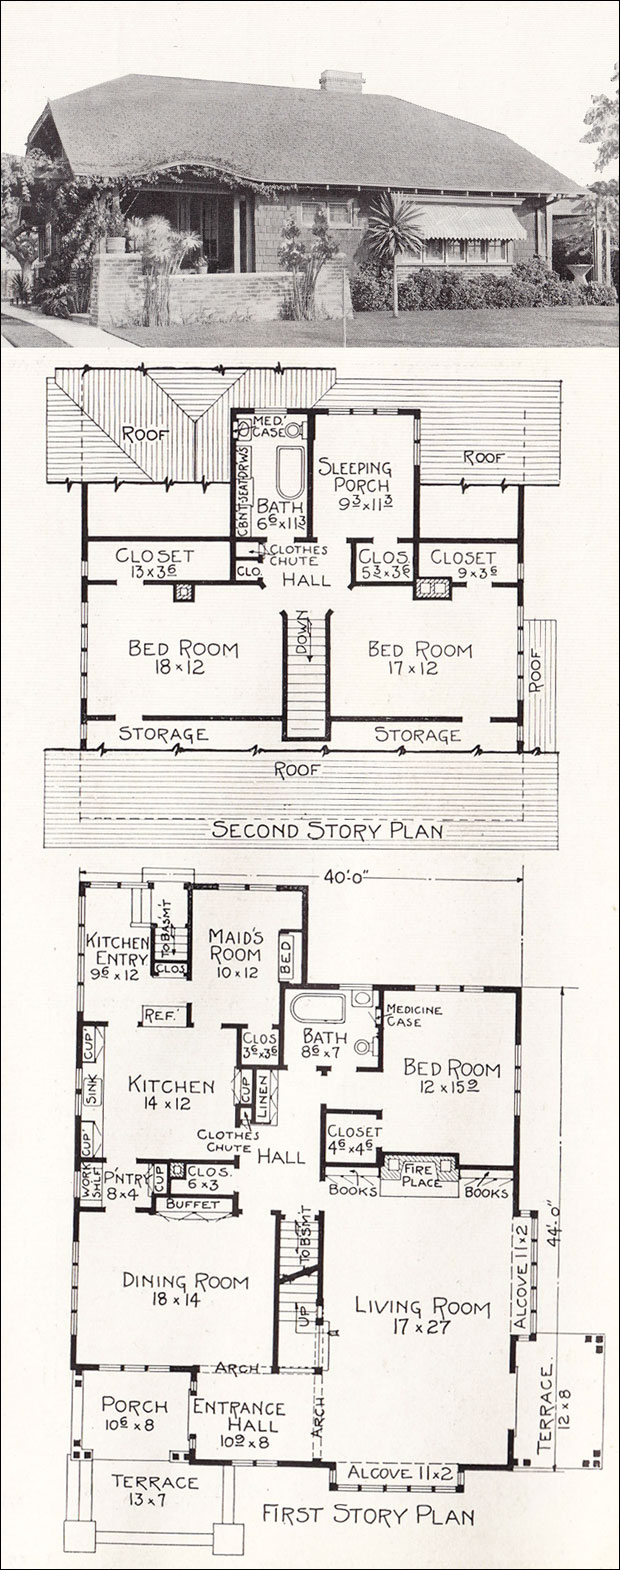 California modern cottage bungalow 1918 home plan by e House plans ca